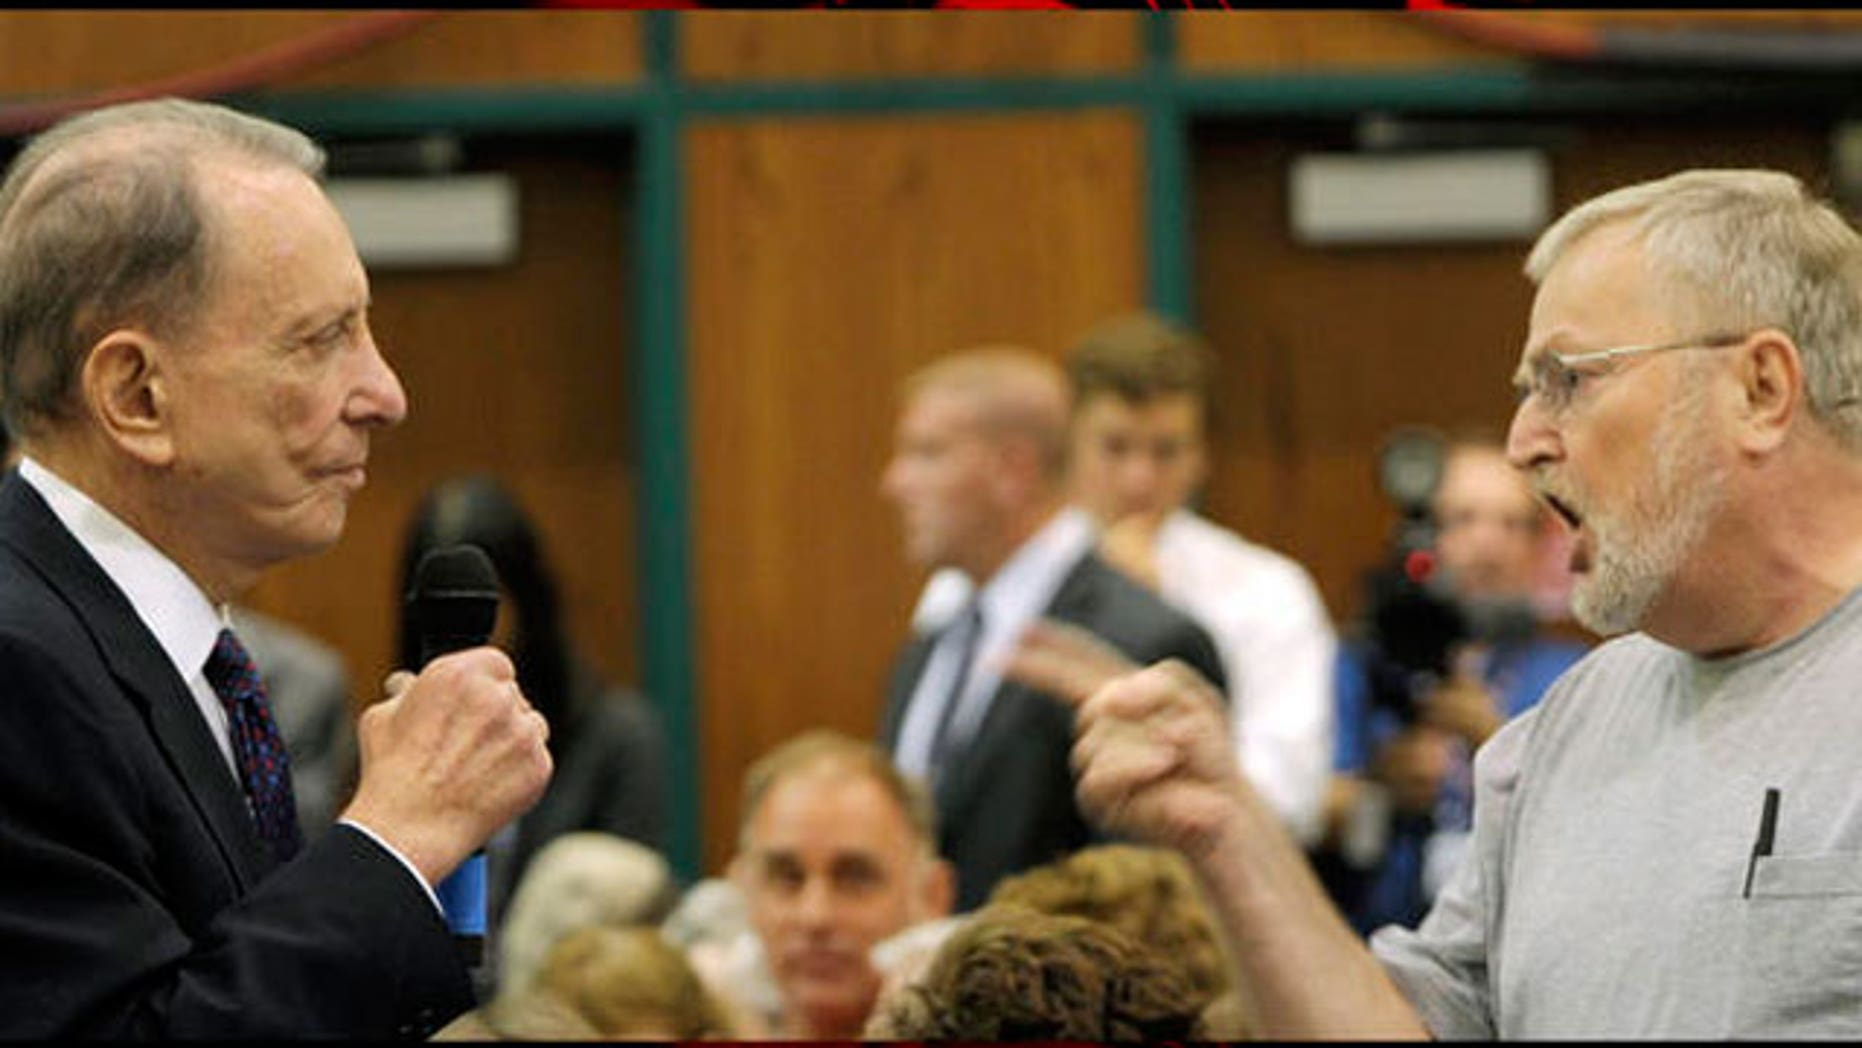 An angry constituent confronts Sen. Arlen Specter at a town hall-style meeting on health care, August, 11, 2009. (AP)